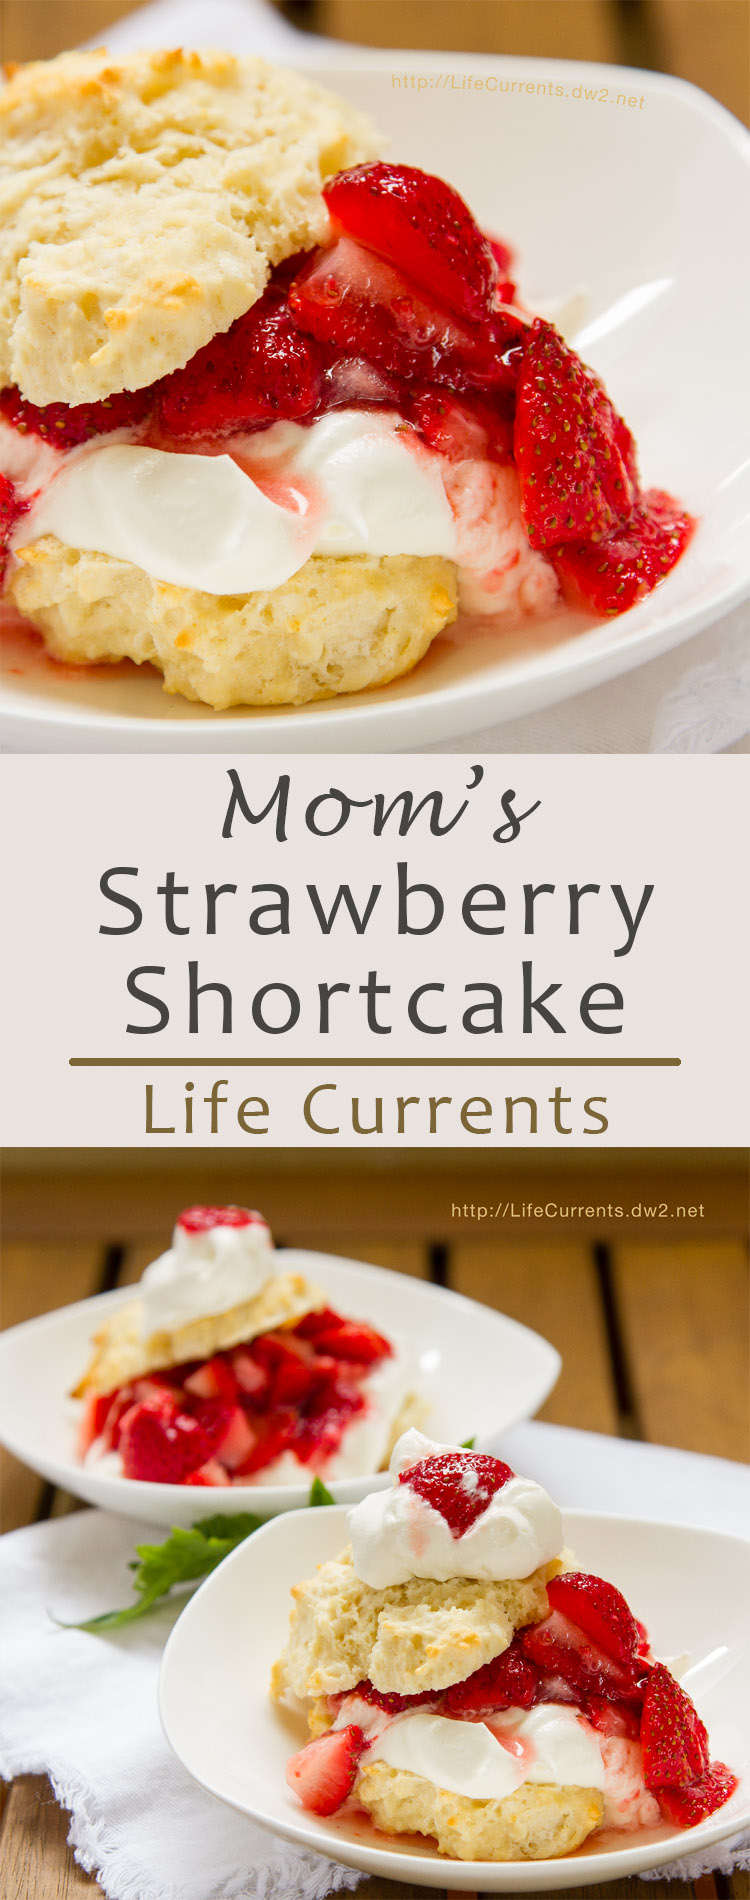 Mom's Strawberry Shortcake is perfect for summer with fresh berries topping sweet whipped cream and warm buttermilk biscuits